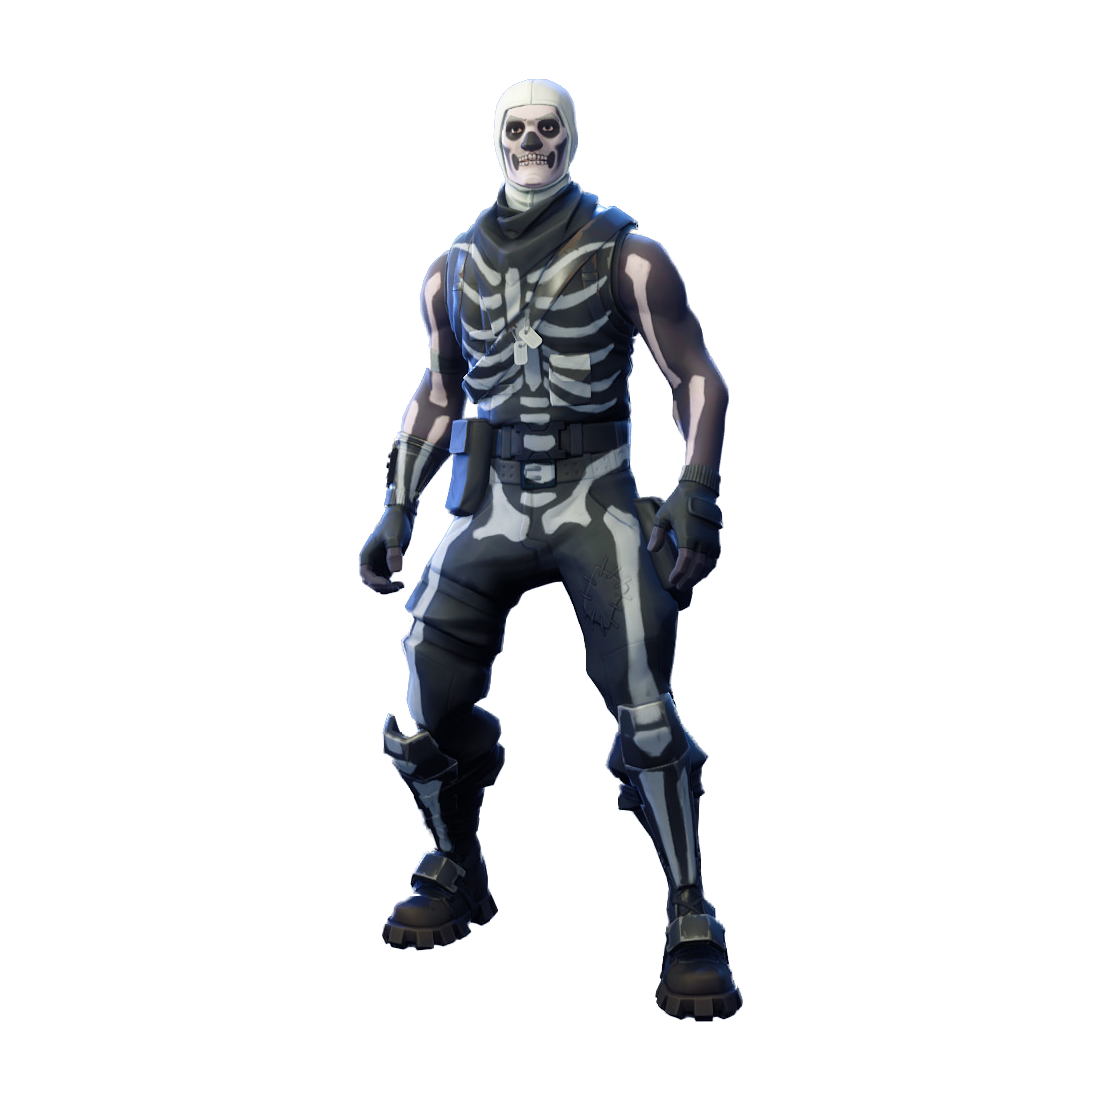 Skull trooper png zombie fortnite. When will come back